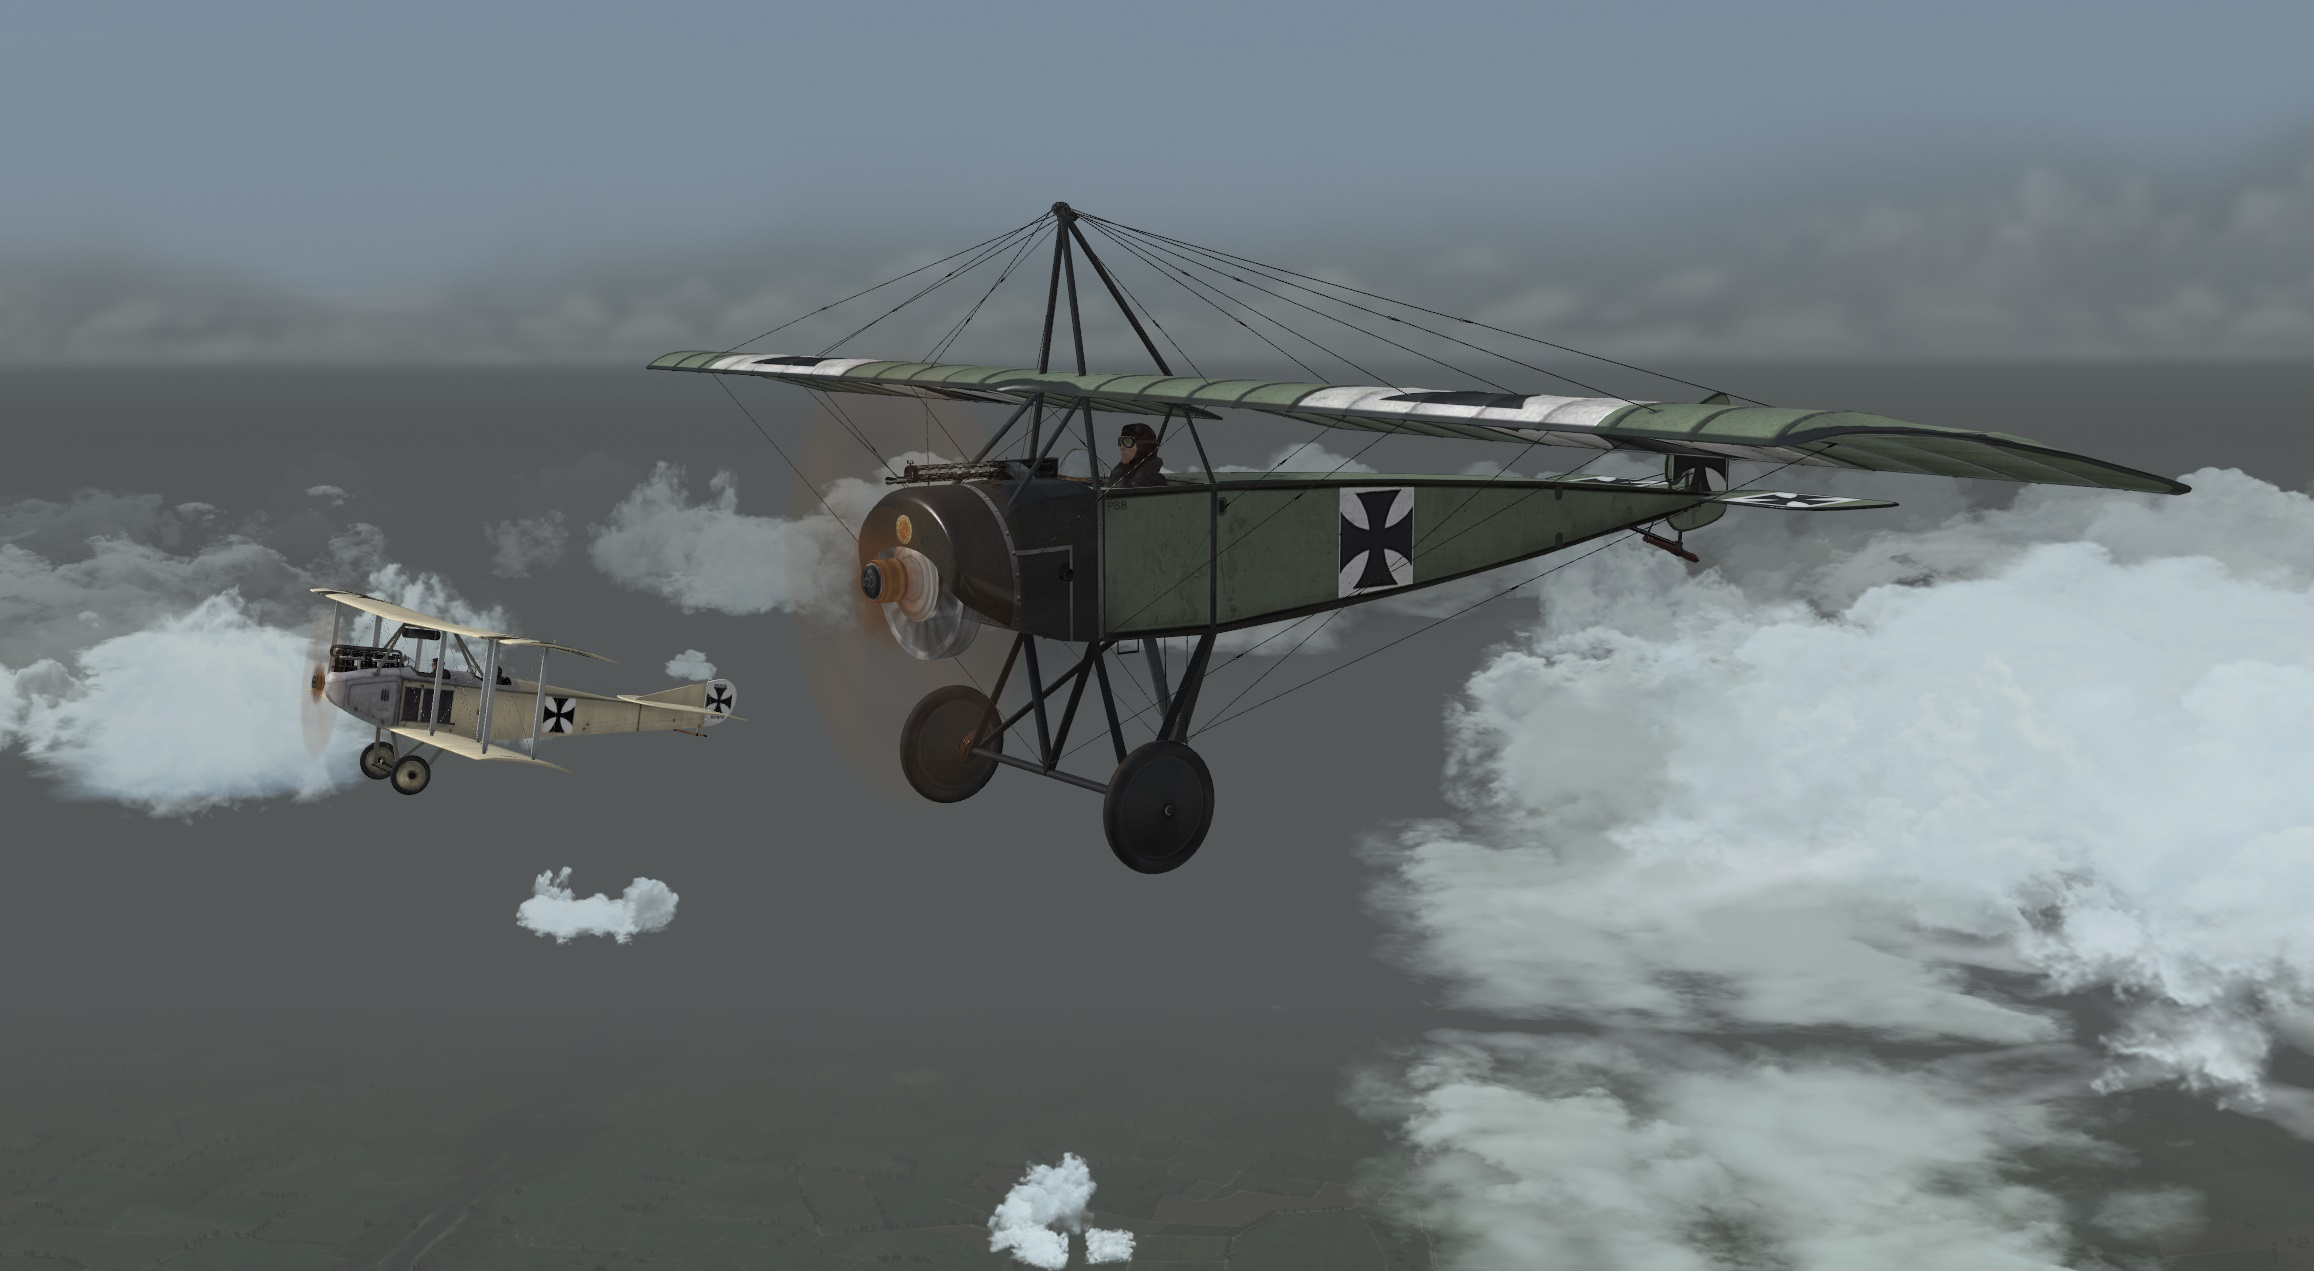 Combat Flight Simulator 3 Screenshot 2020.06.13 - 23.28.24.50.jpg